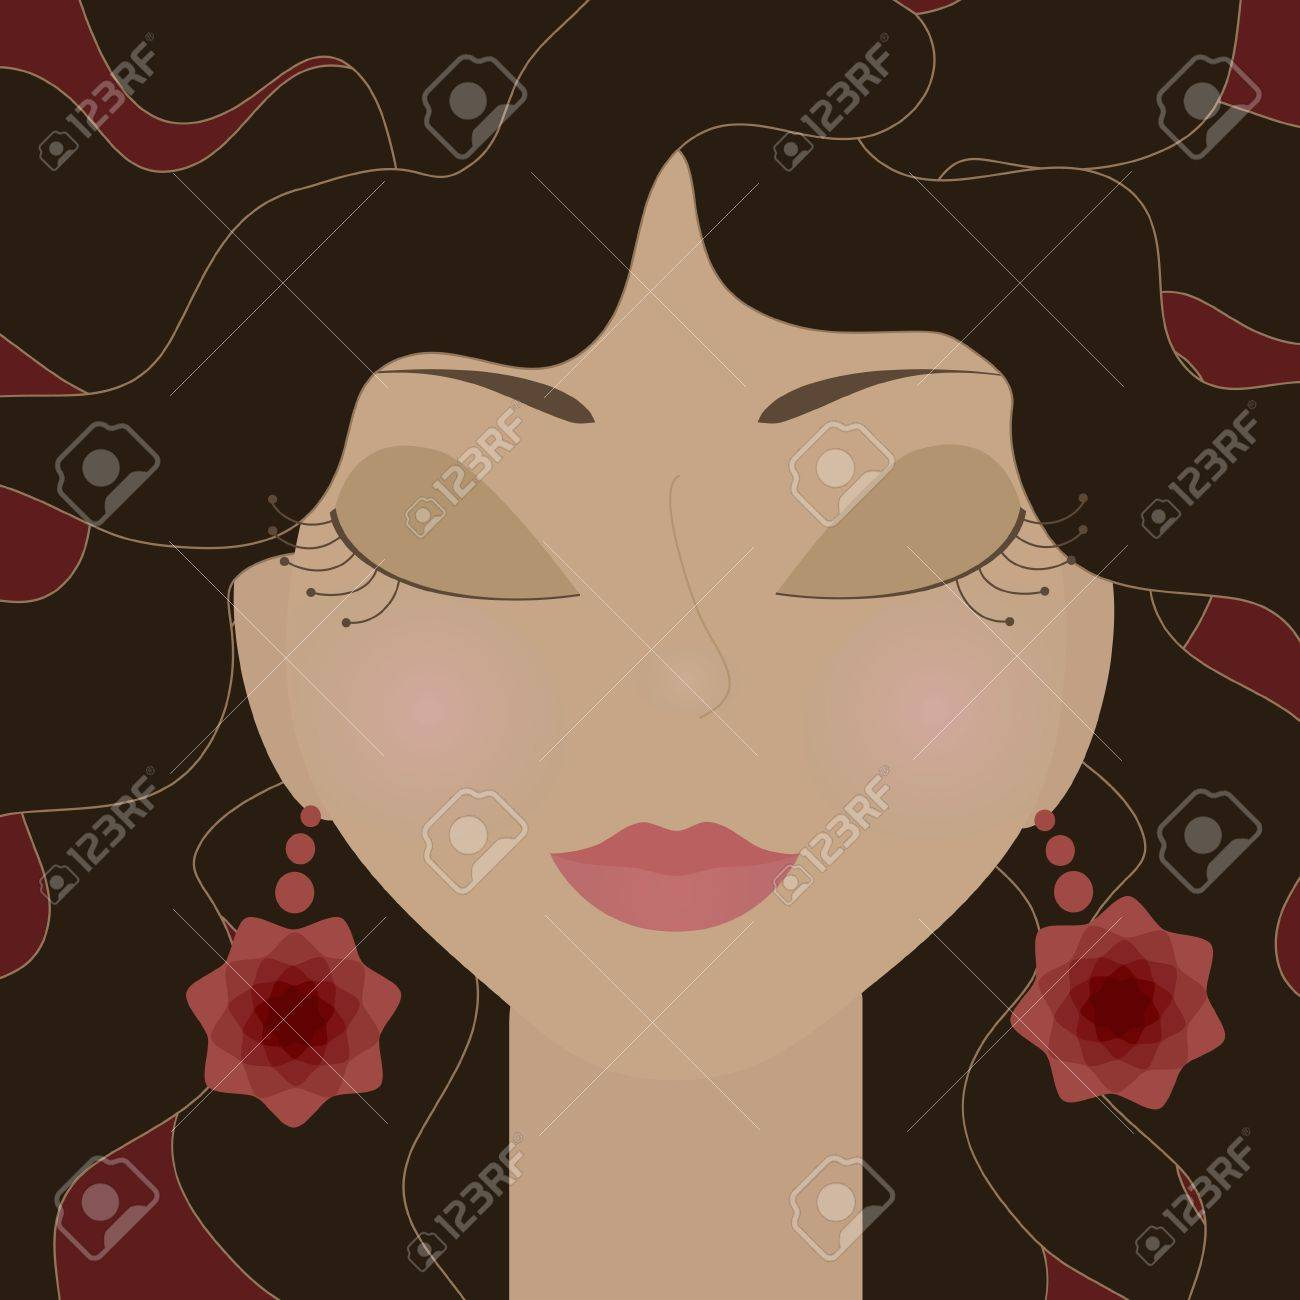 Gypsy girl with closed eyes and red flowers earrings Stock Vector - 15828097